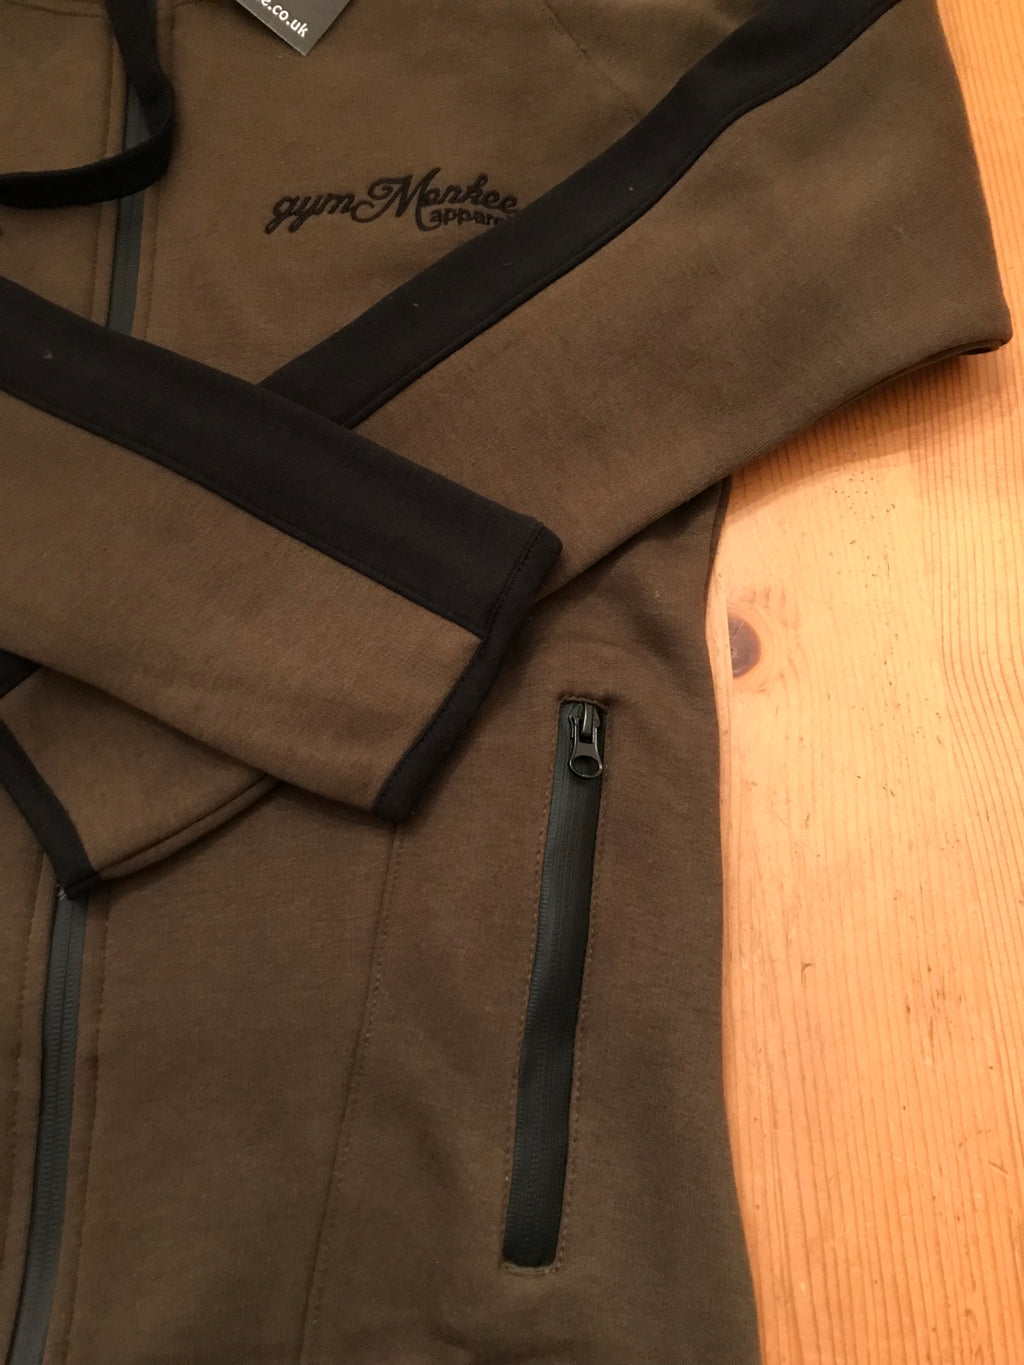 Gym Monkee - Khaki Zipped Hoodie Close Up